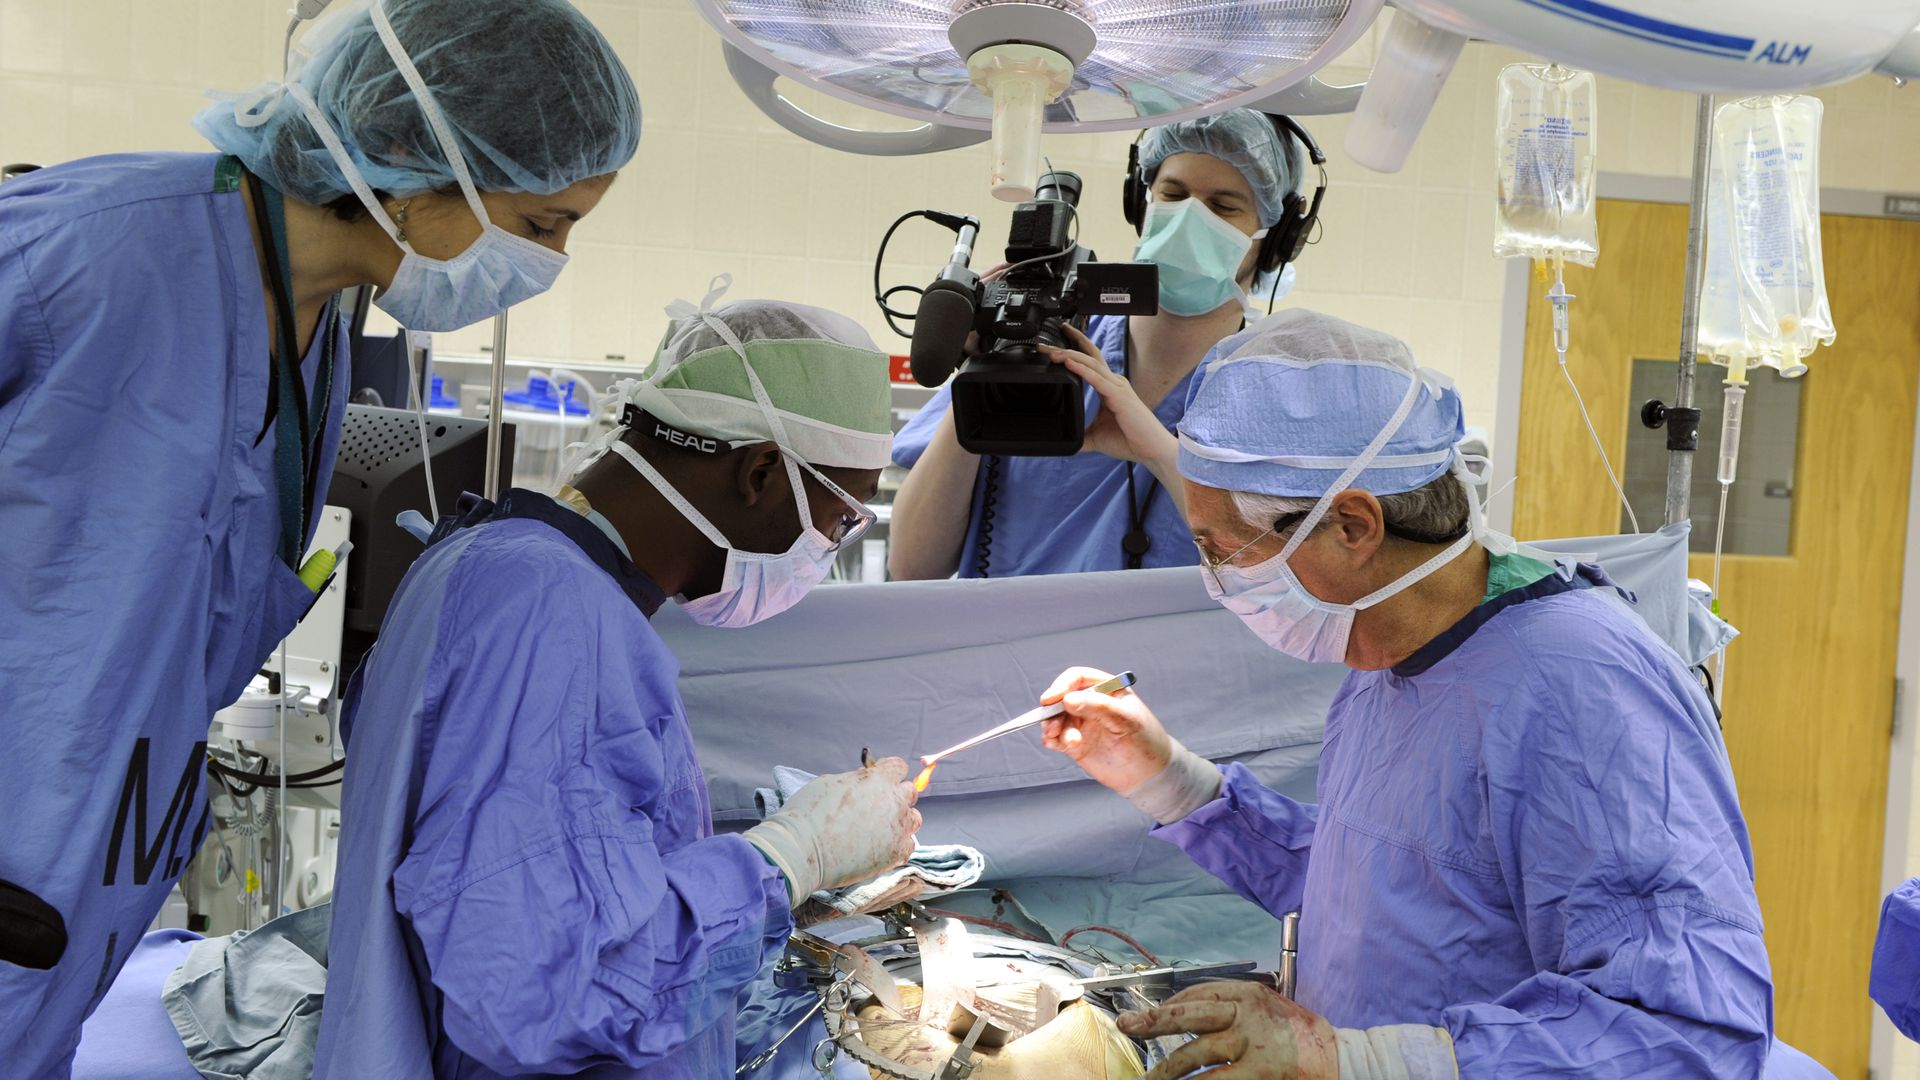 A camerawoman in scrubs films a surgery on ABC's Boston Med